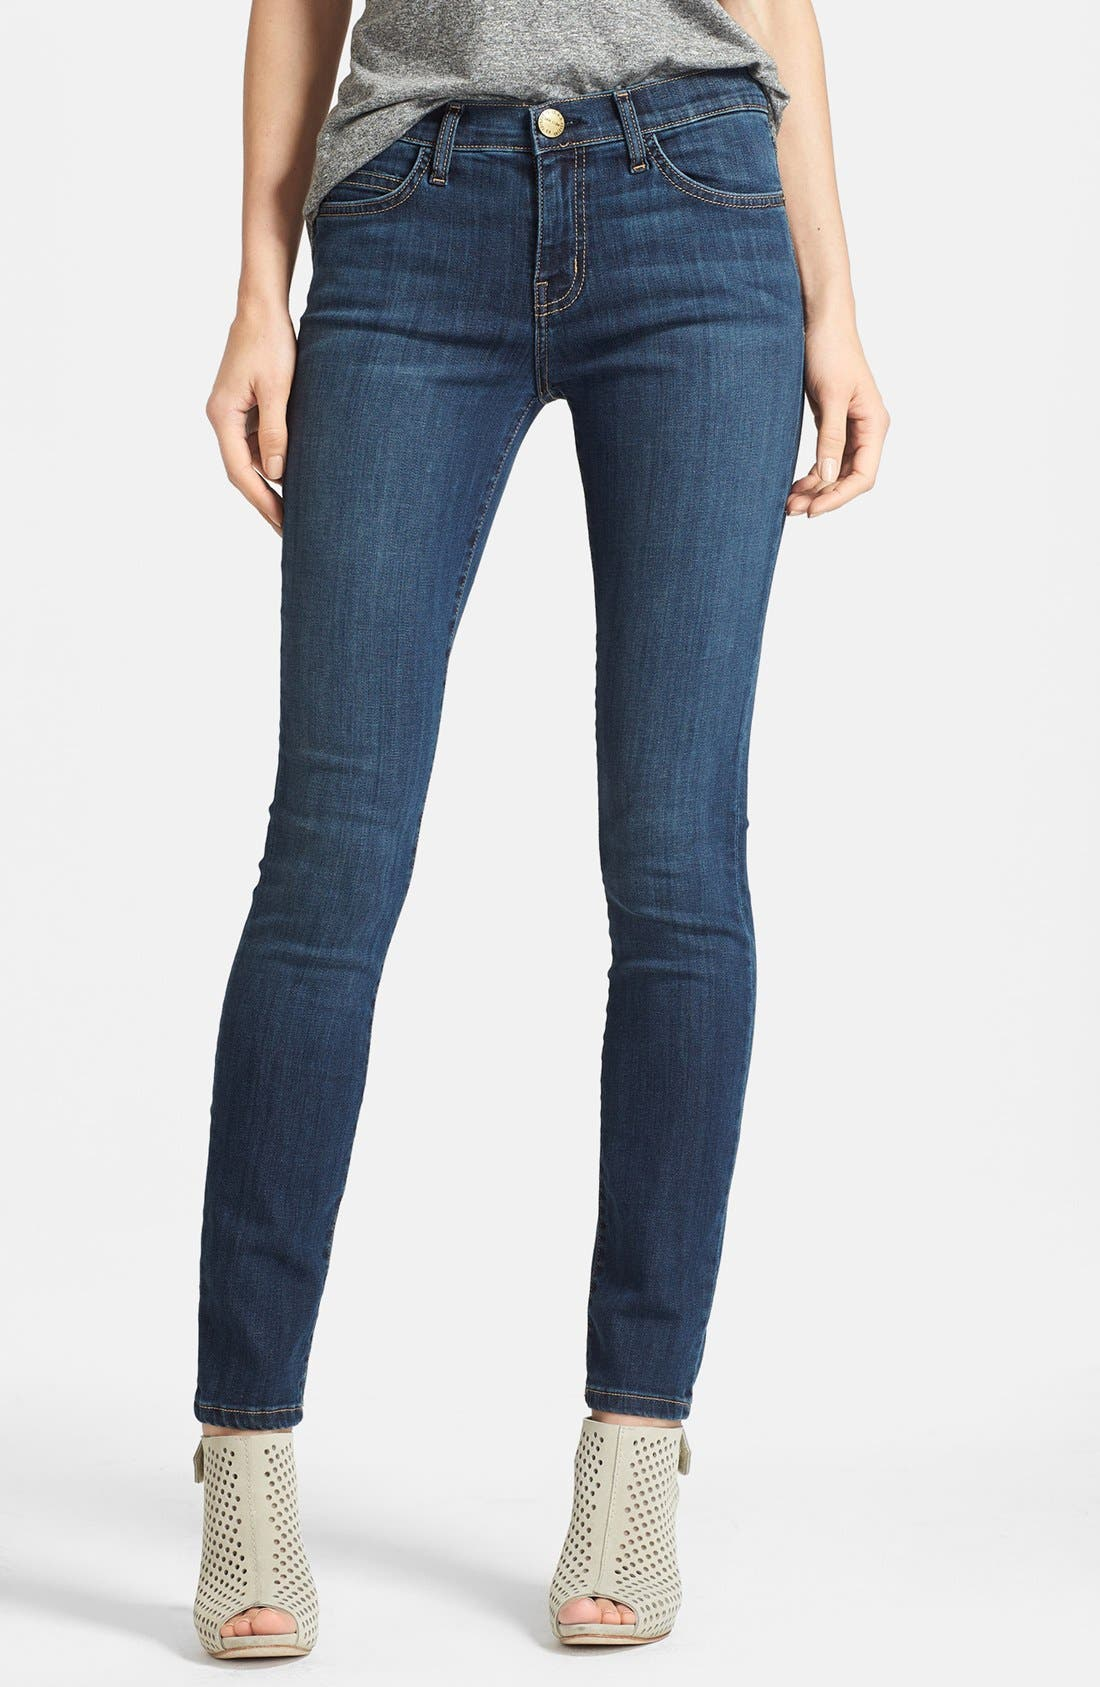 Alternate Image 1 Selected - Current/Elliott 'The Ankle' Skinny Jeans (Stagecoach)